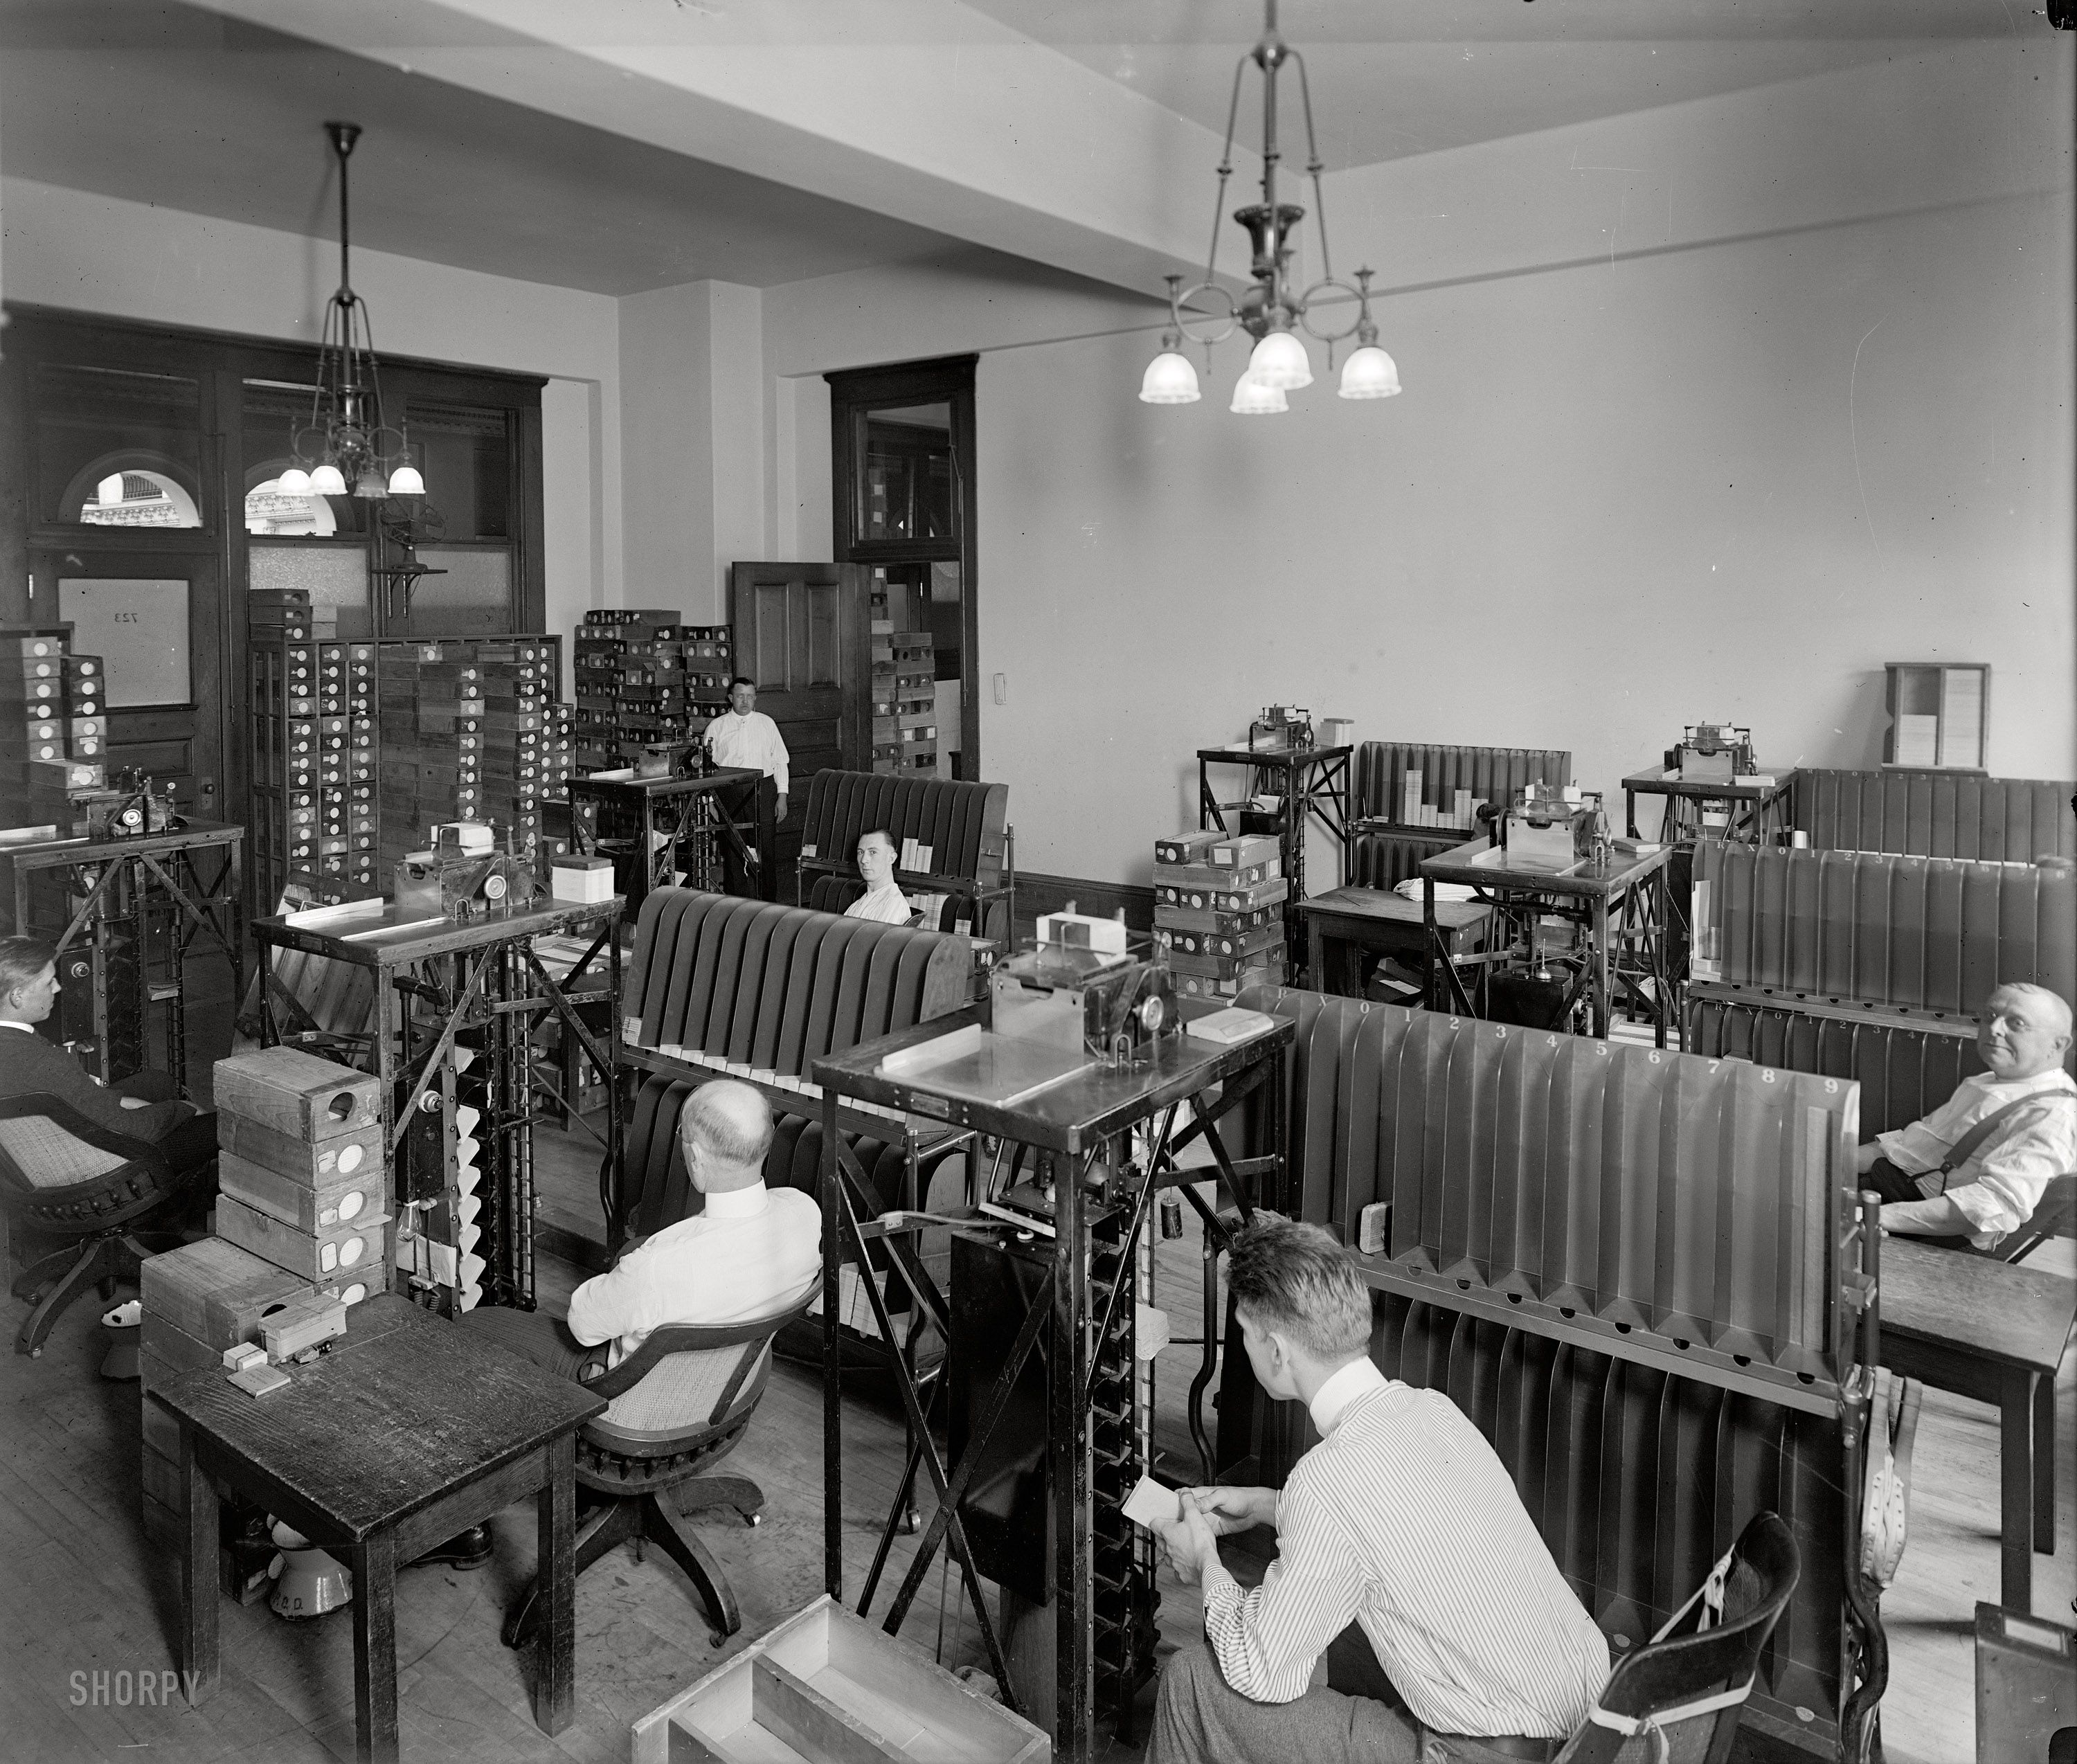 (c. 1920) Tabulating Machine Co. - Washington, D.C.